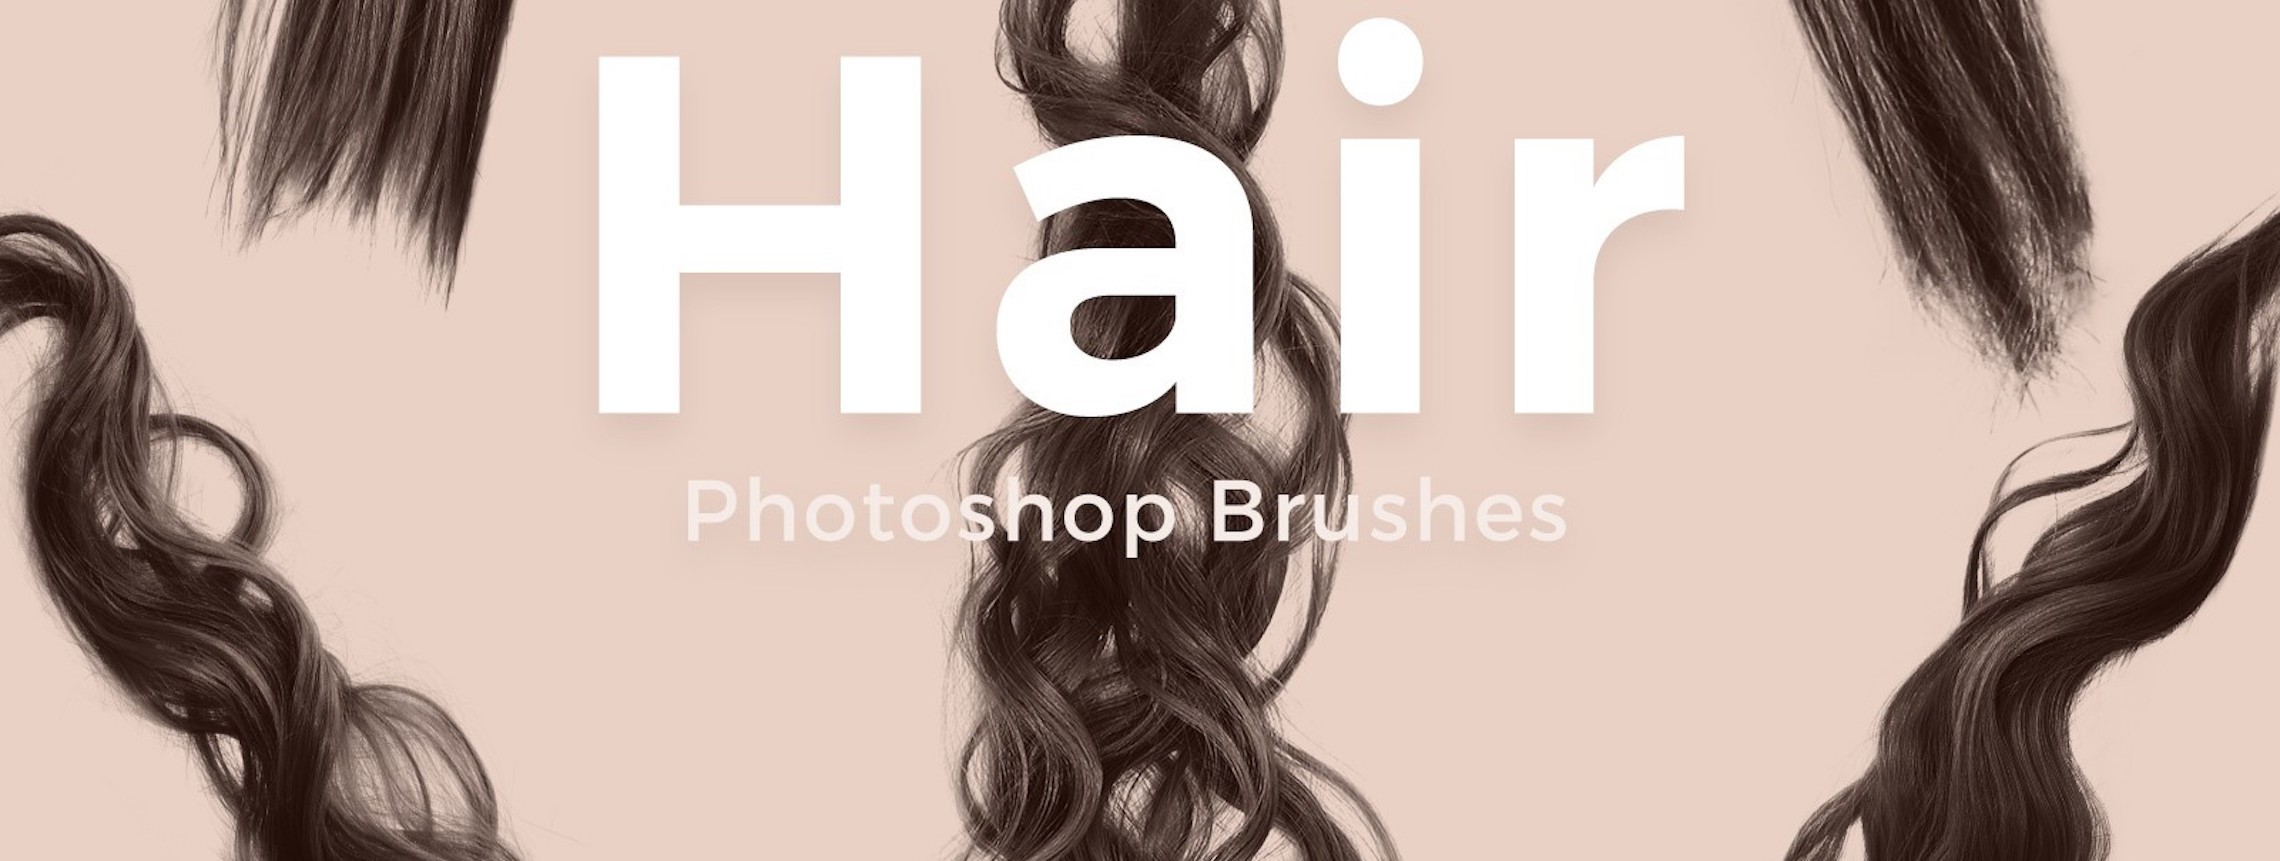 ​30 Gorgeous Hair Brushes for Photoshop